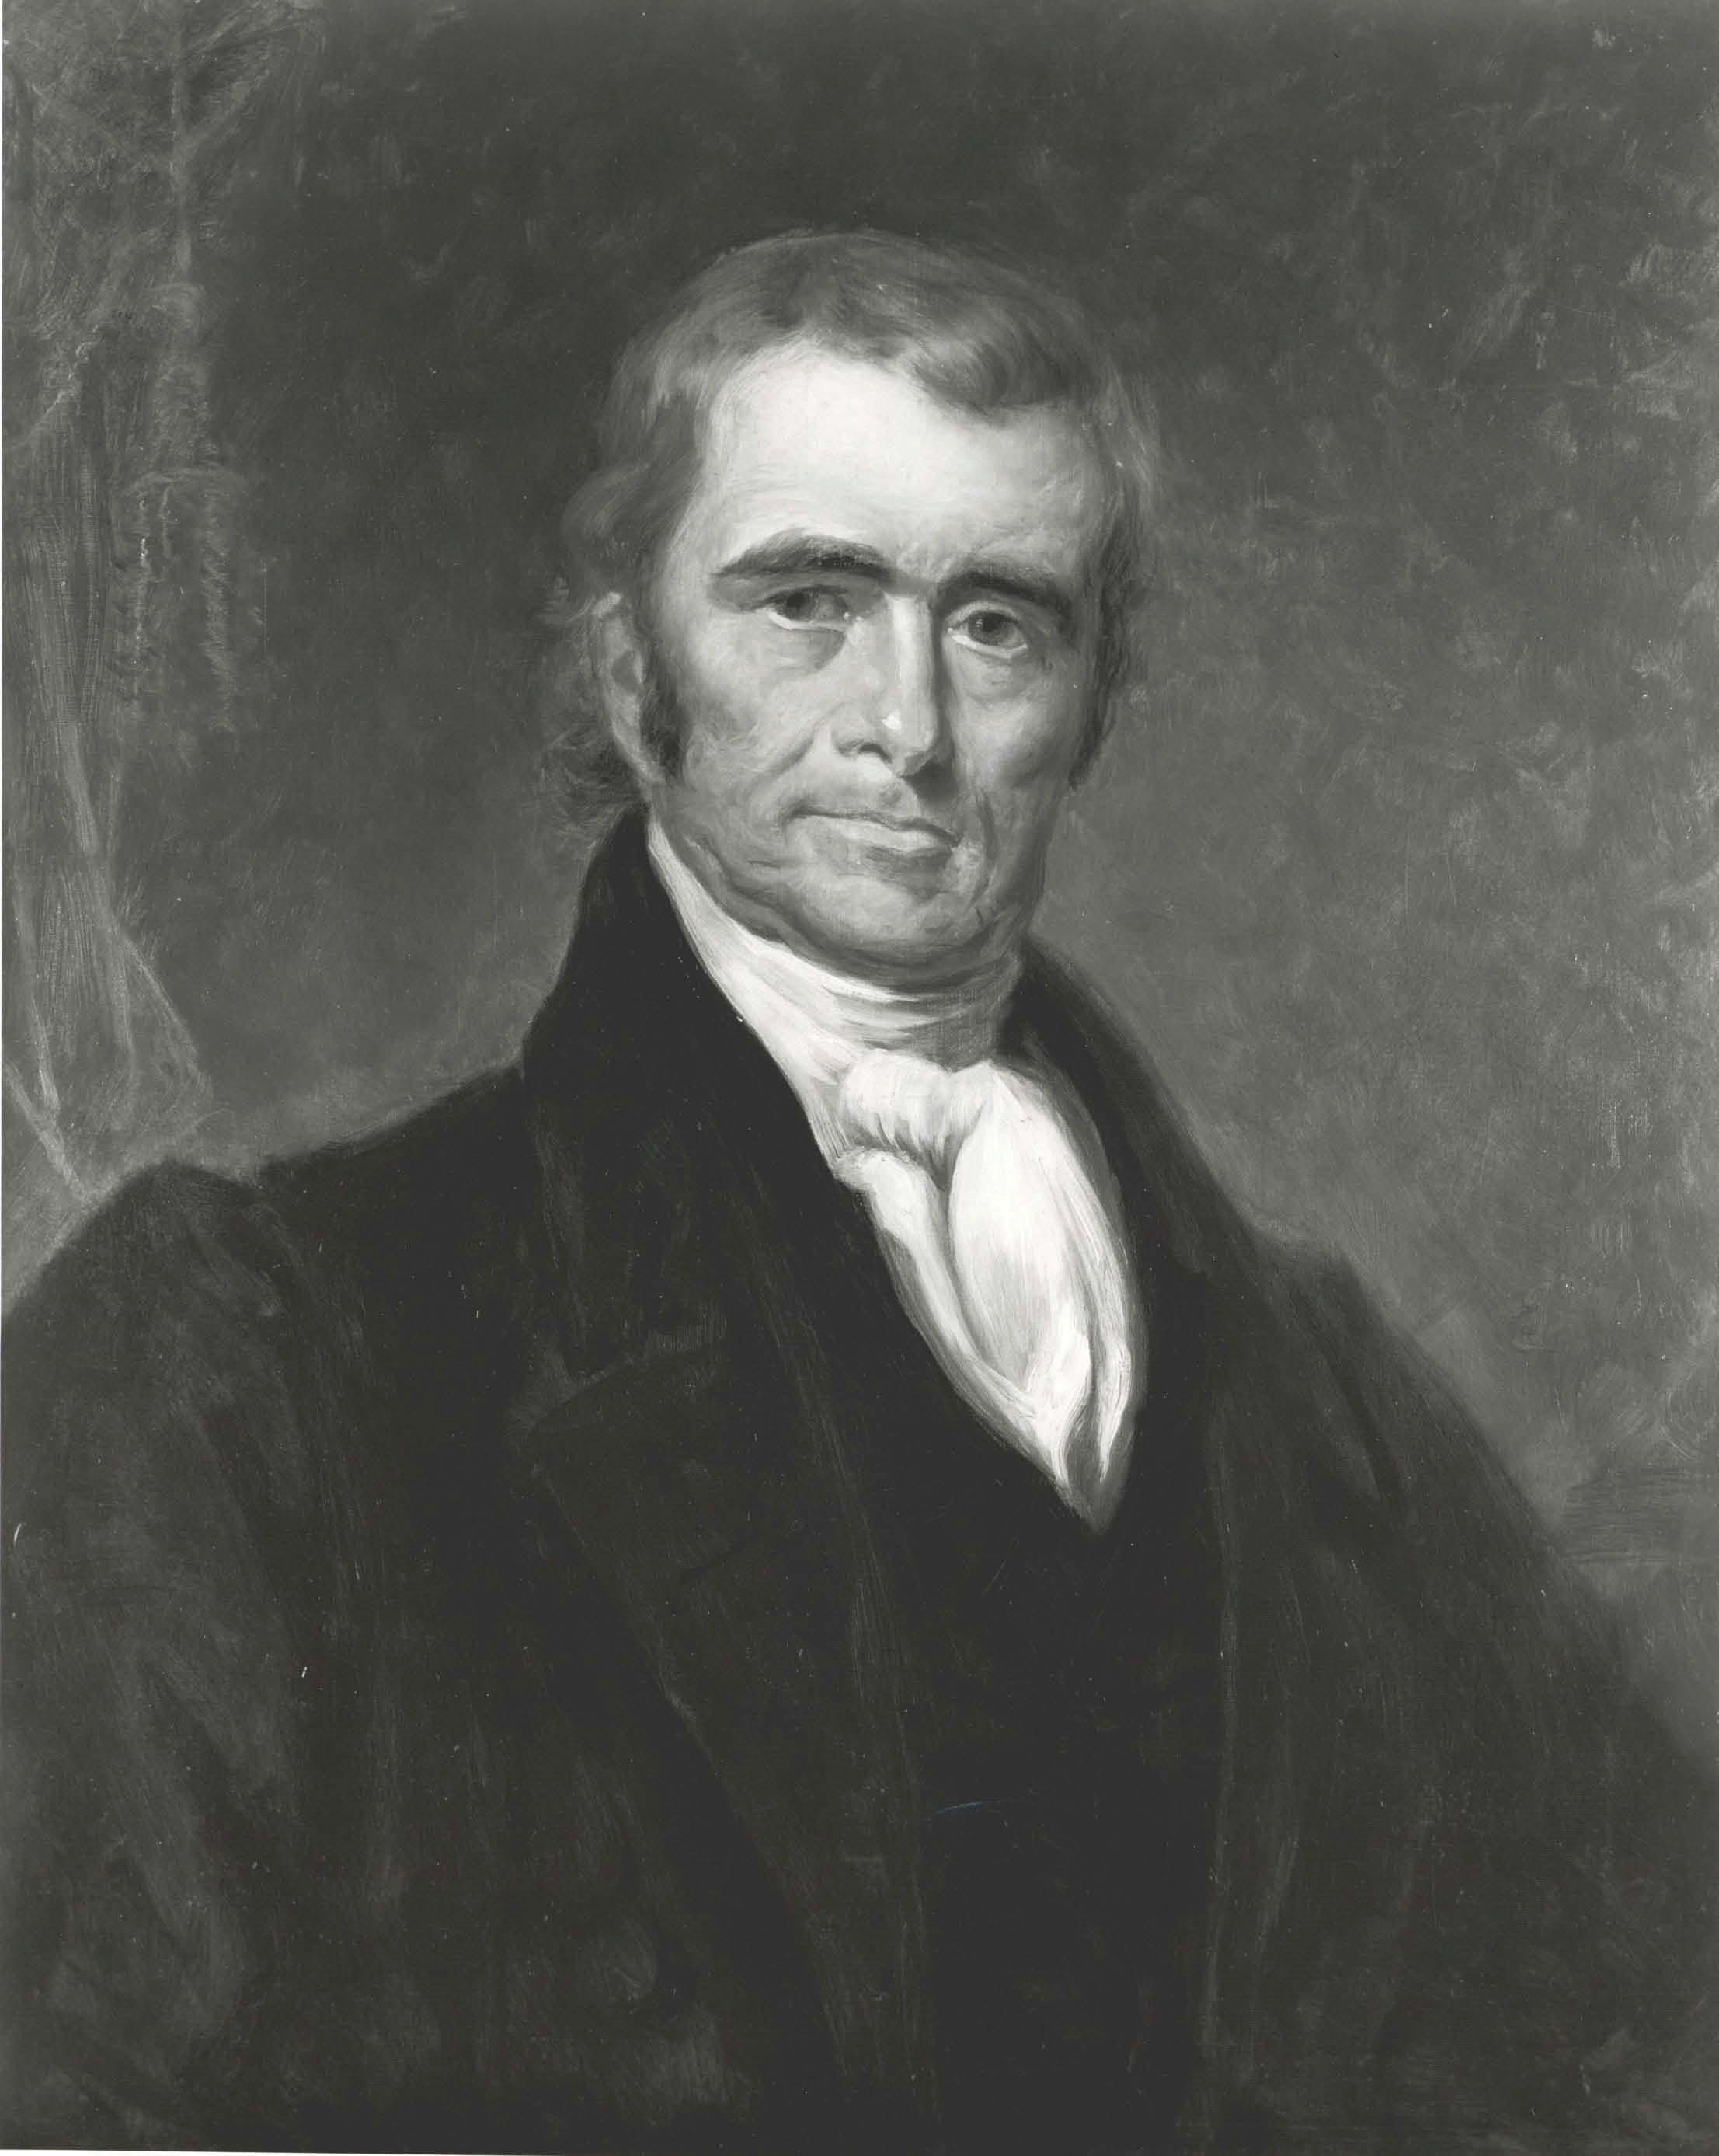 chief justice marshall court ruling significance Chief justice john marshall authored the marbury v looking at the decision through the lens of the although marbury v madison limited the court's power in.